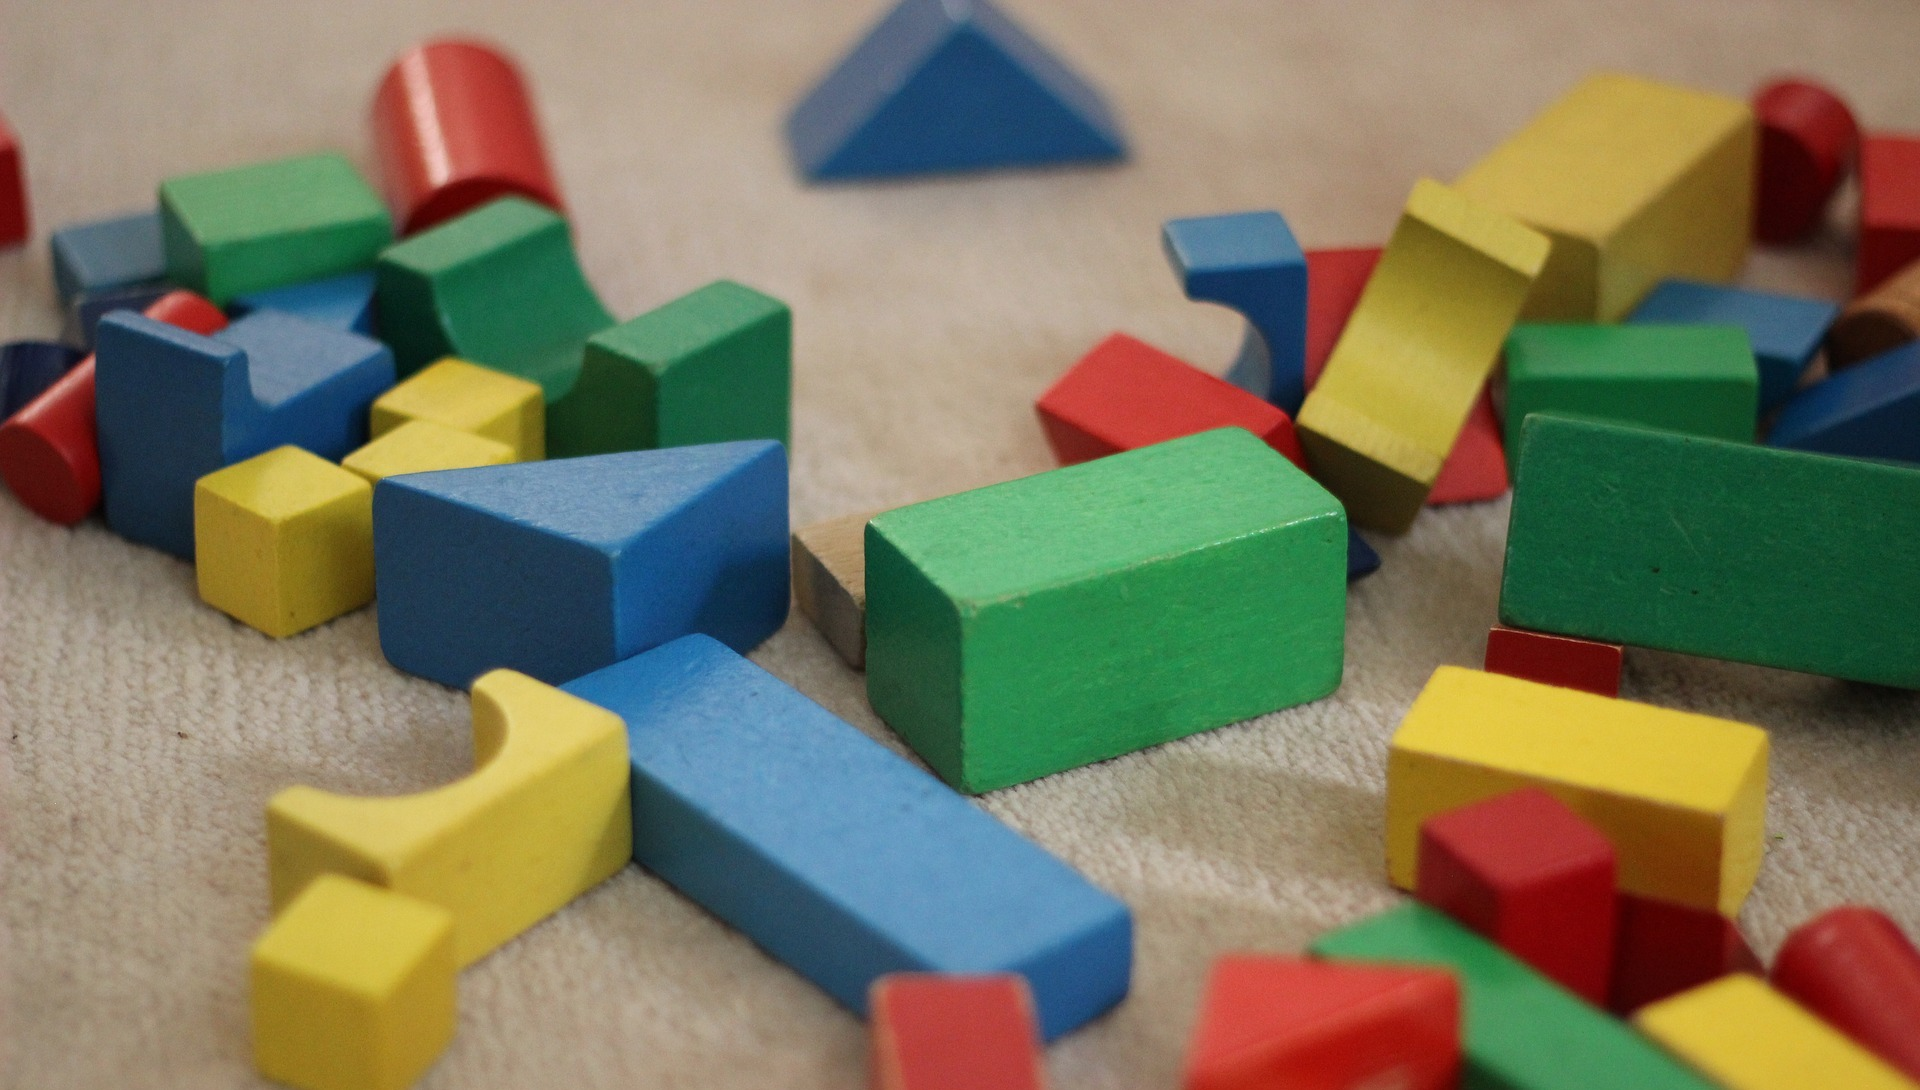 building-blocks-1563961_1920.jpg